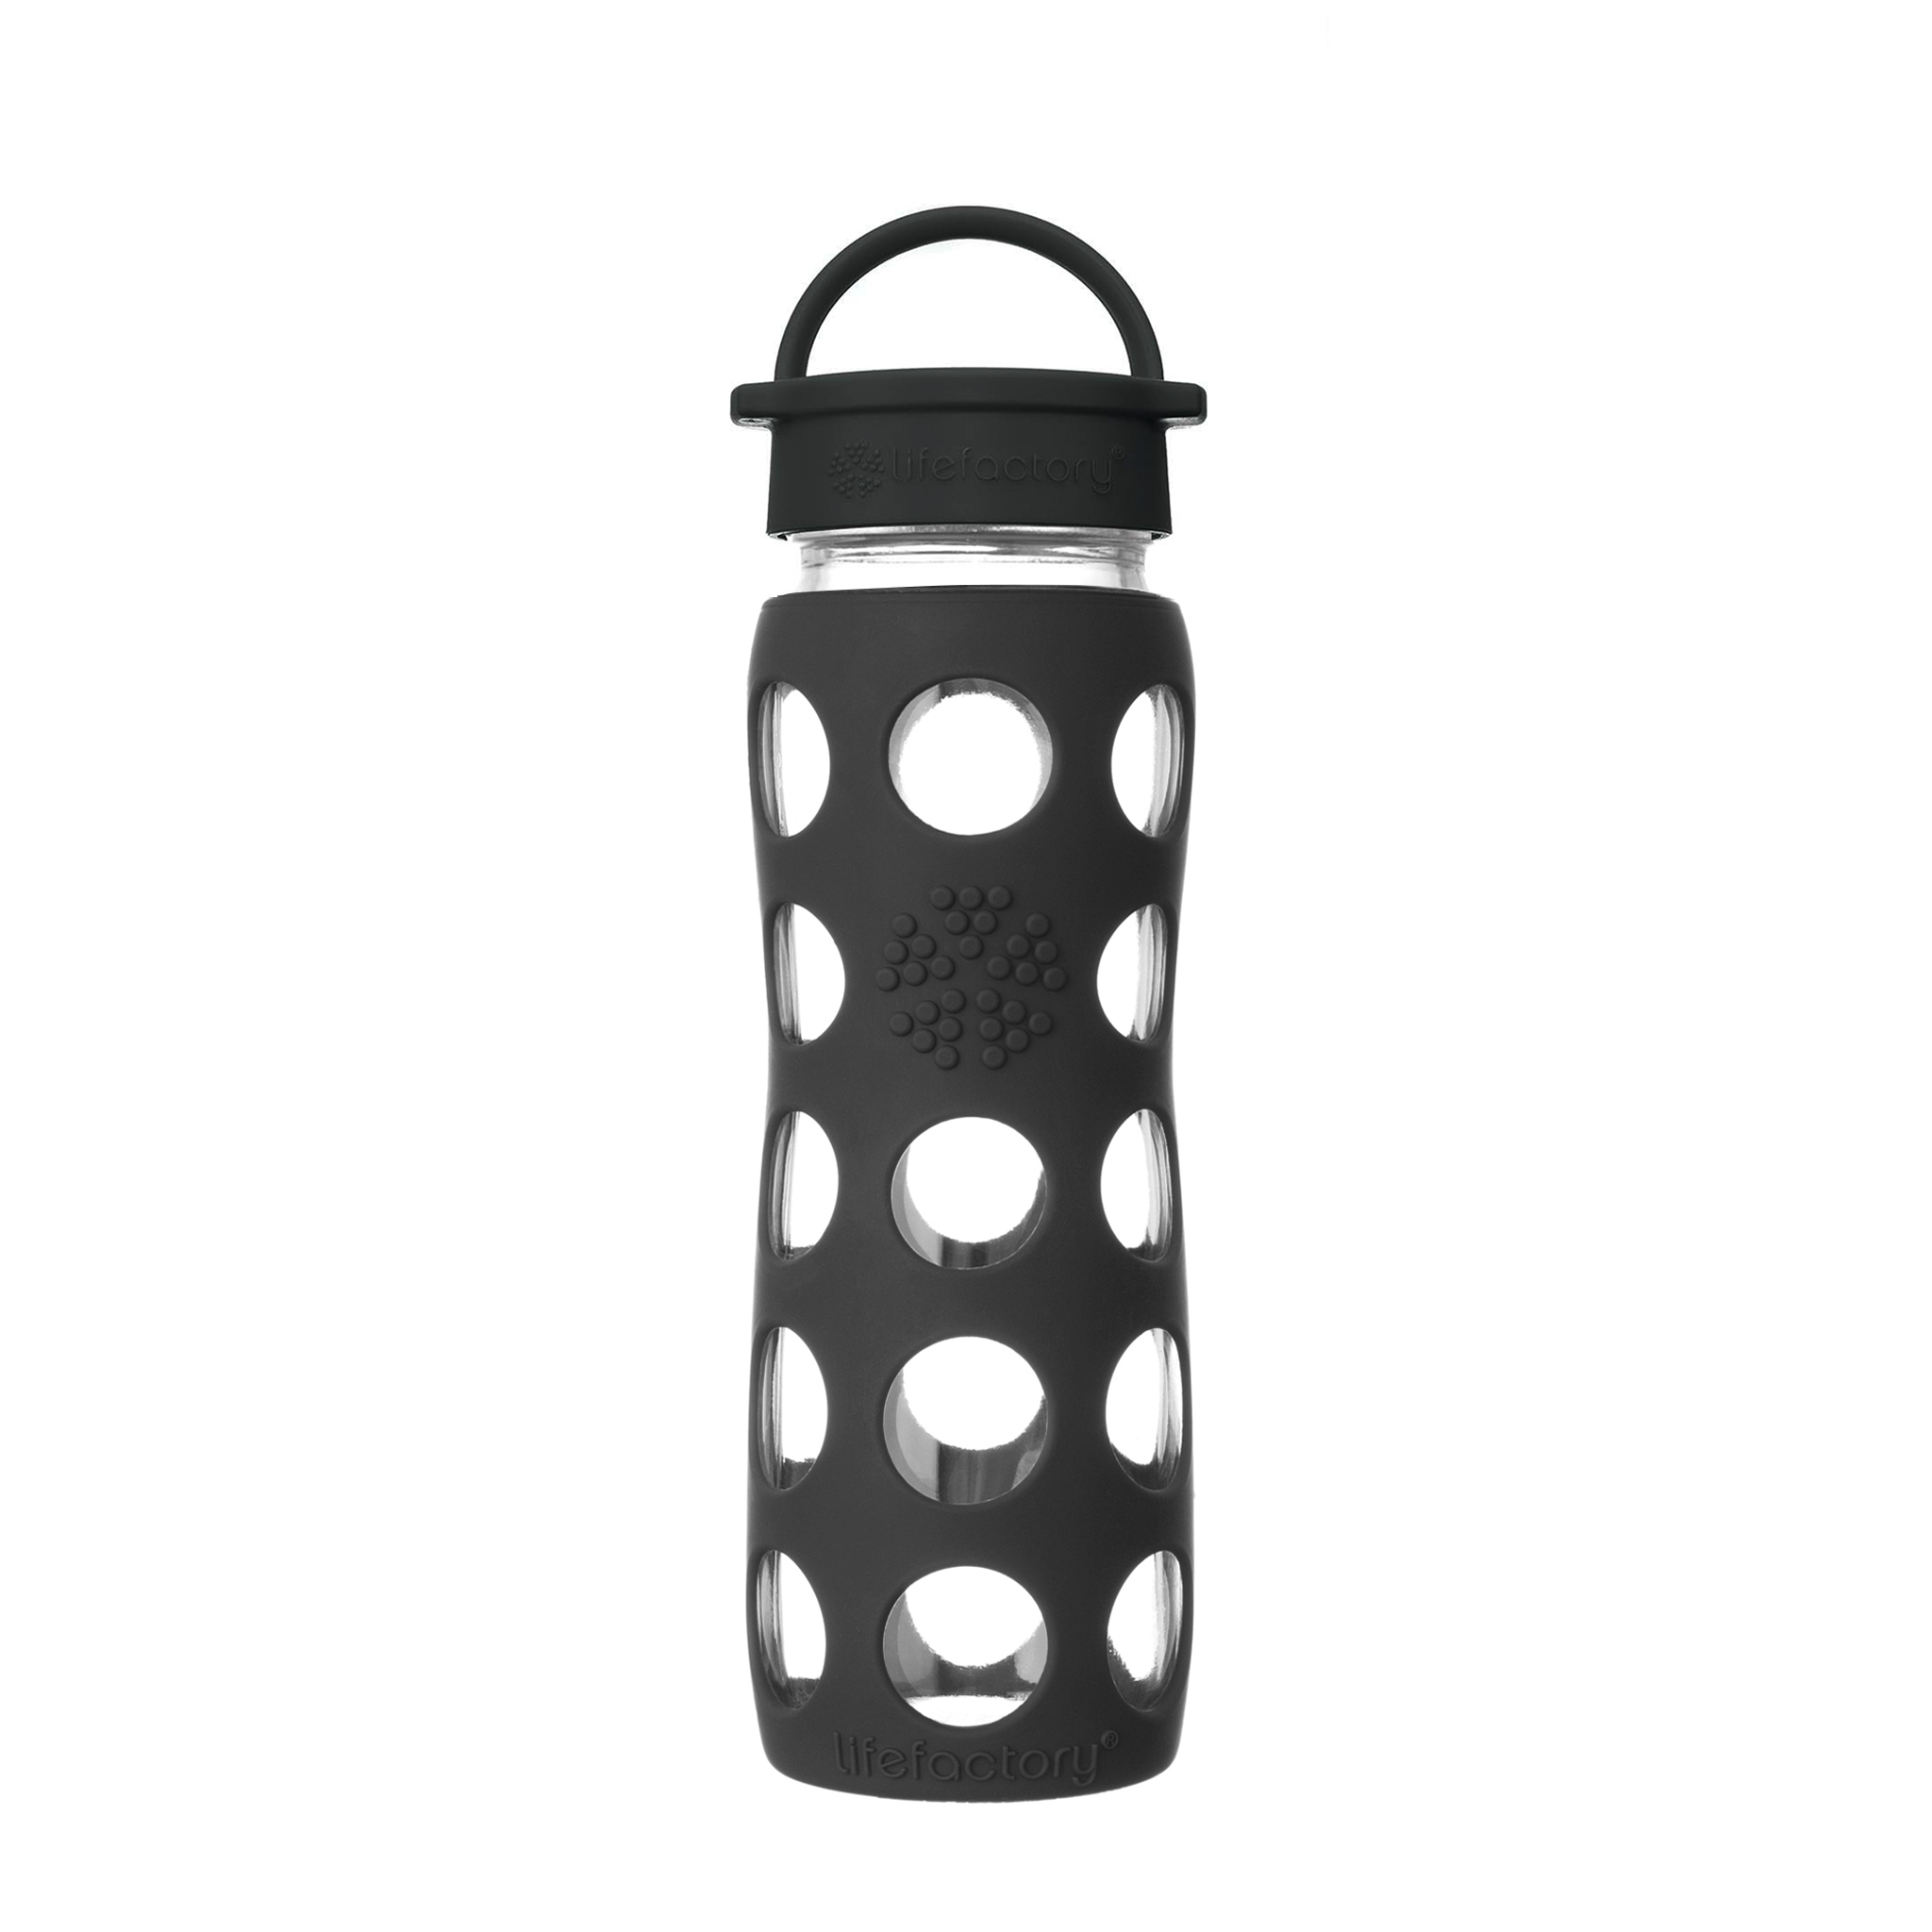 Lifefactory 22 oz Glass Bottle Core 2.0 - Onyx Black